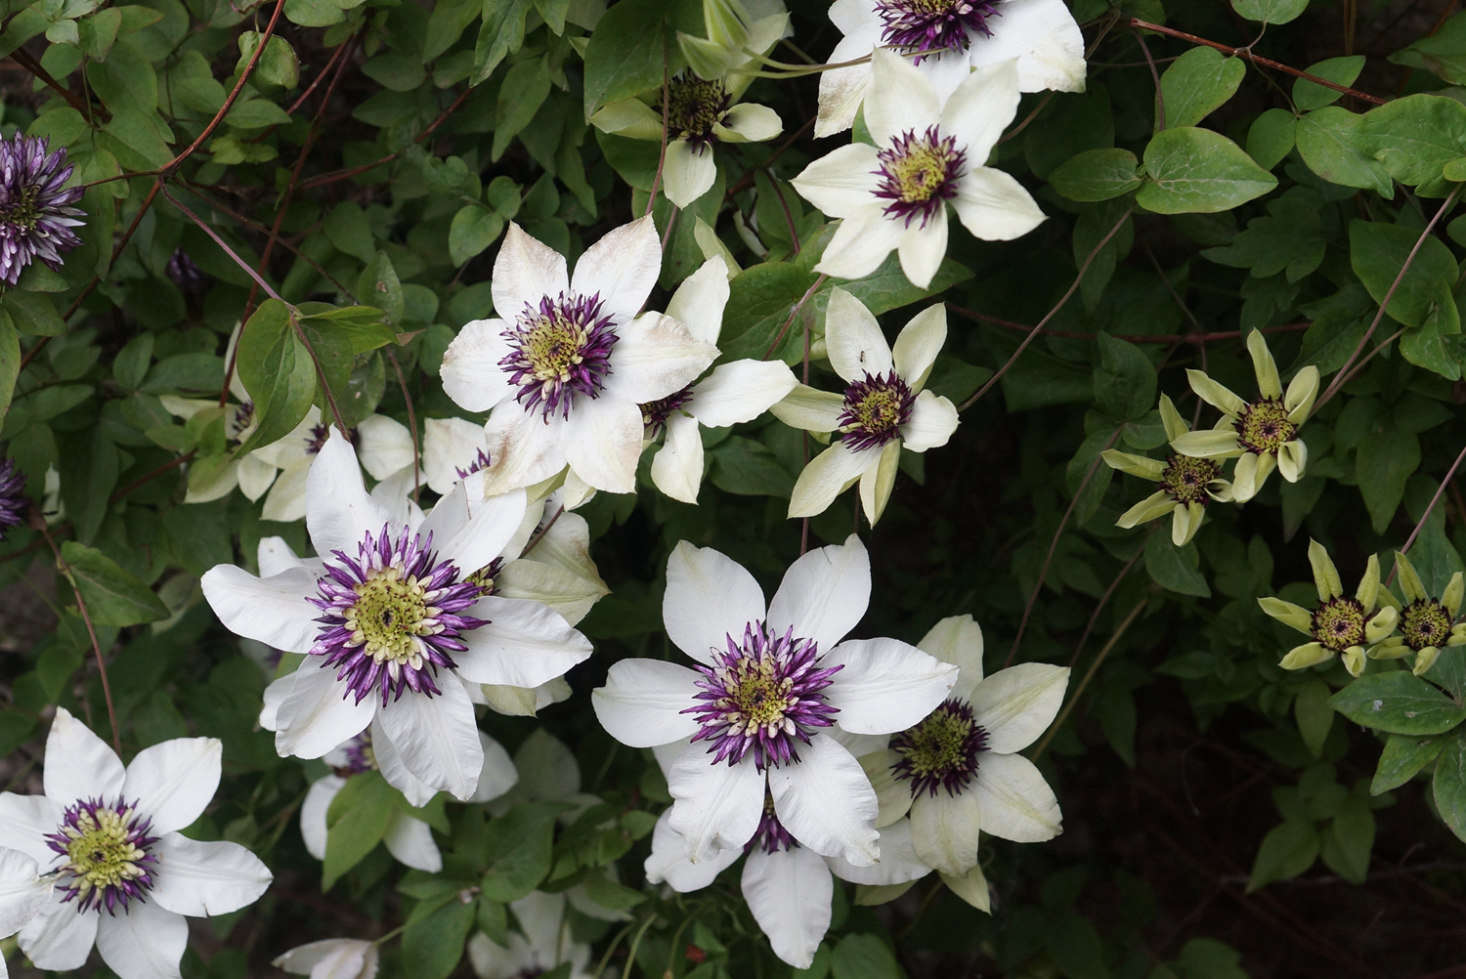 Clematis florida var. sieboldiana. A Clematis vine is £.99 from Crocus. For US shoppers, the variety is available seasonally from Brushwood Nursery.